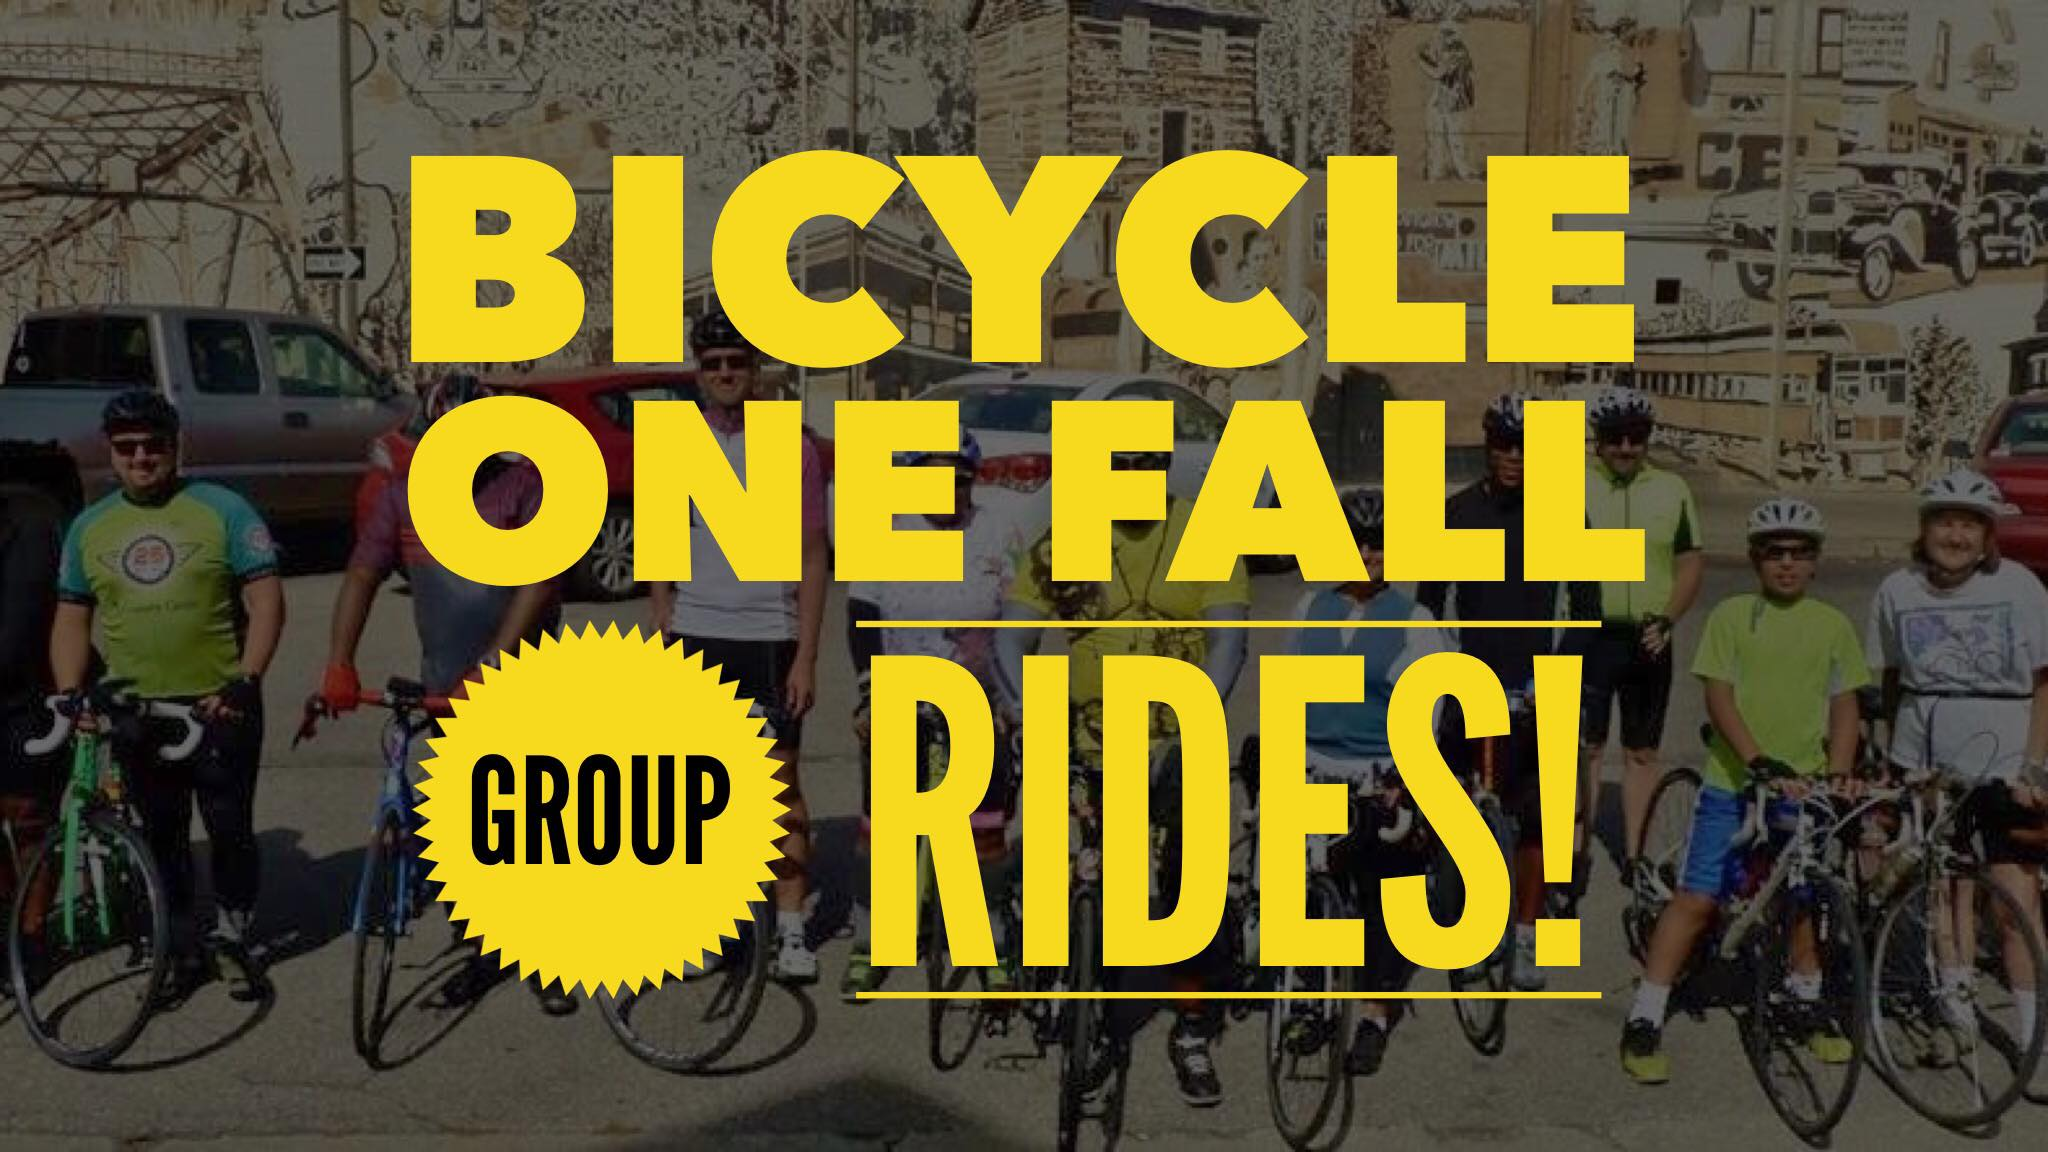 BICYCLE ONE FALL GROUP RIDES